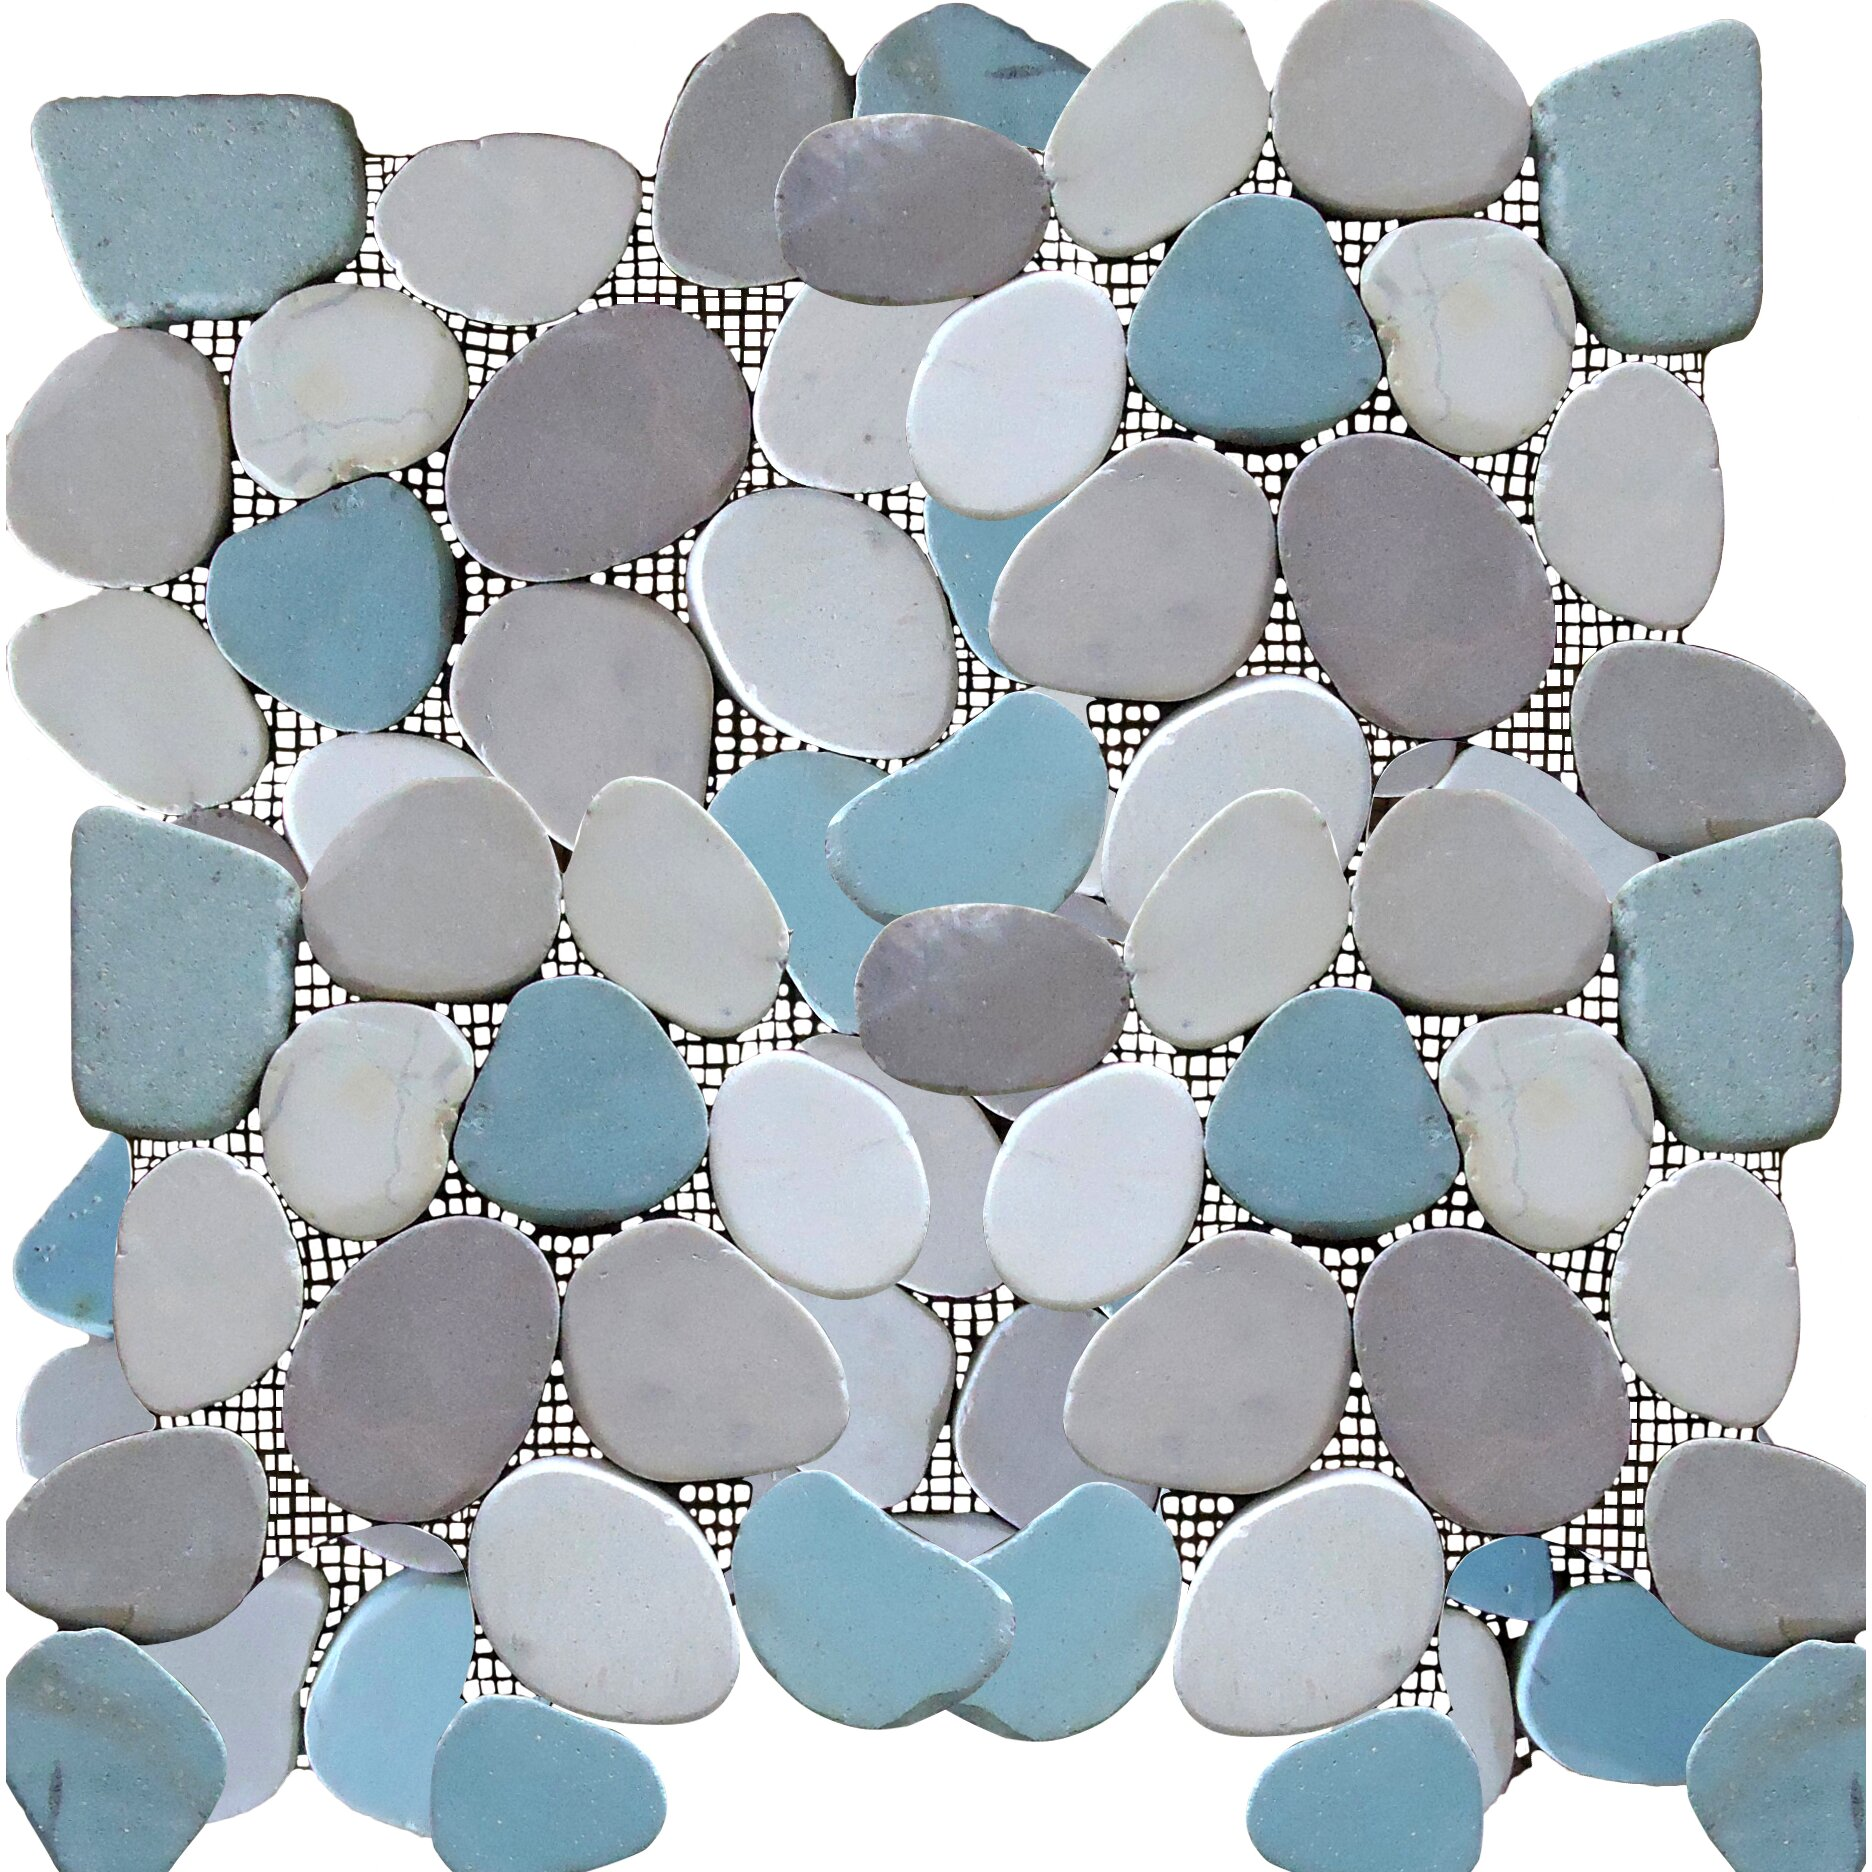 Rocha Random Sized Natural Stone Pebble Tile In Multi